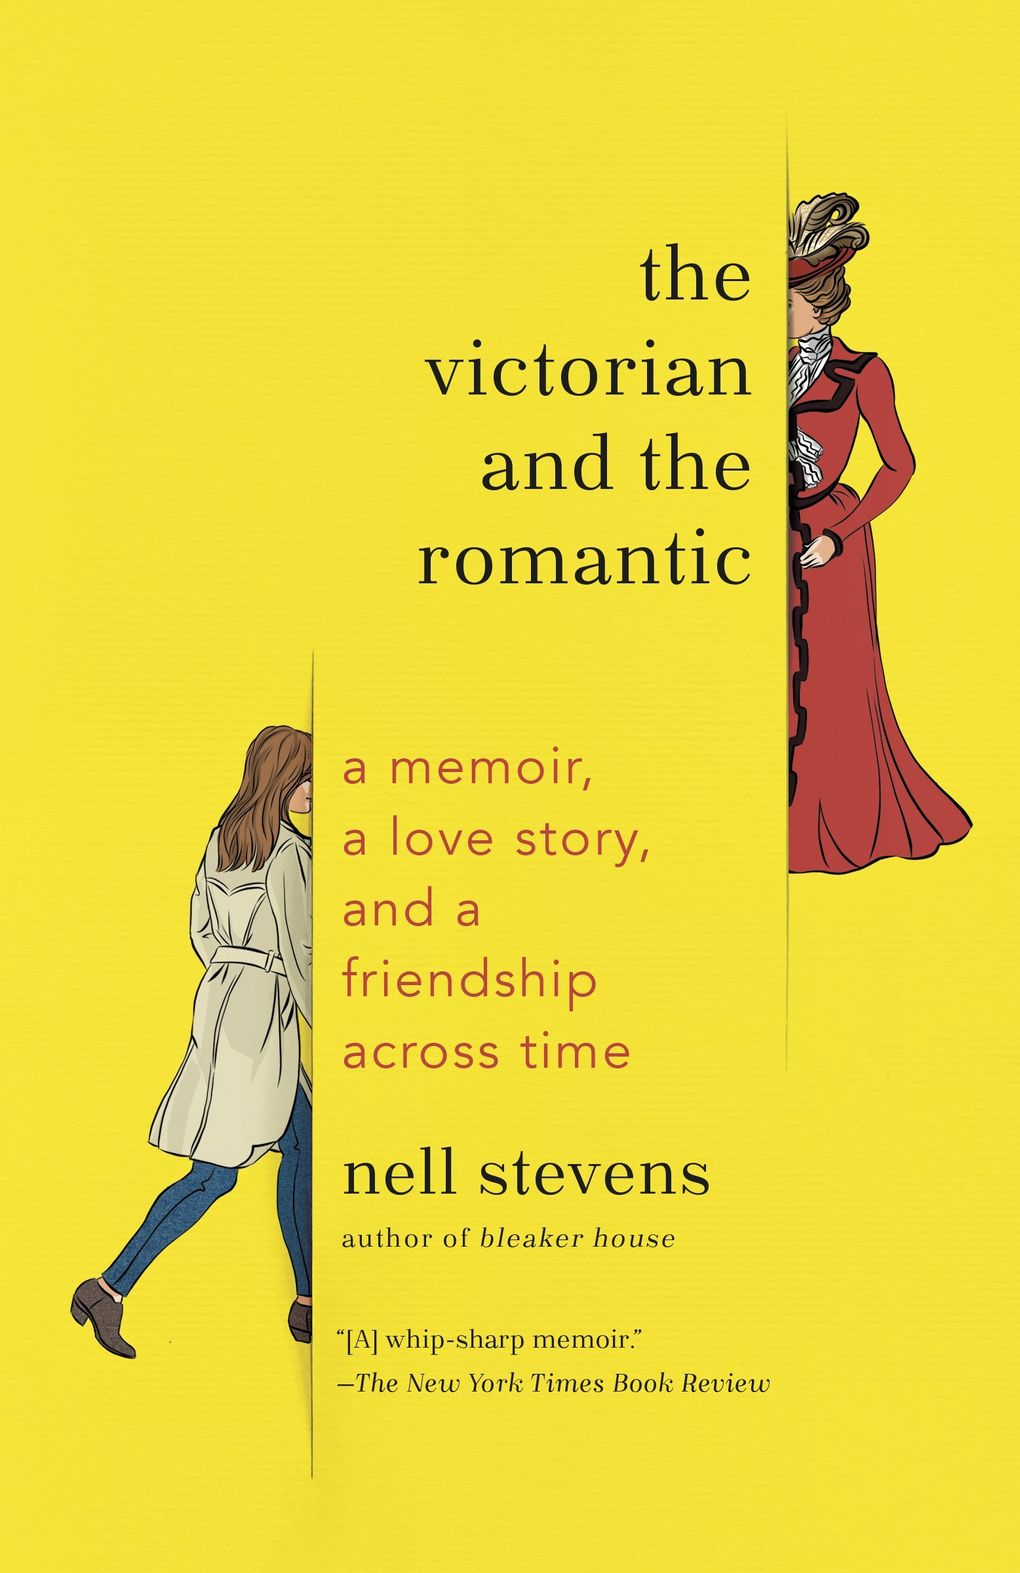 """""""The Victorian and the Romantic"""" by Nell Stevens. (Penguin Random House)"""